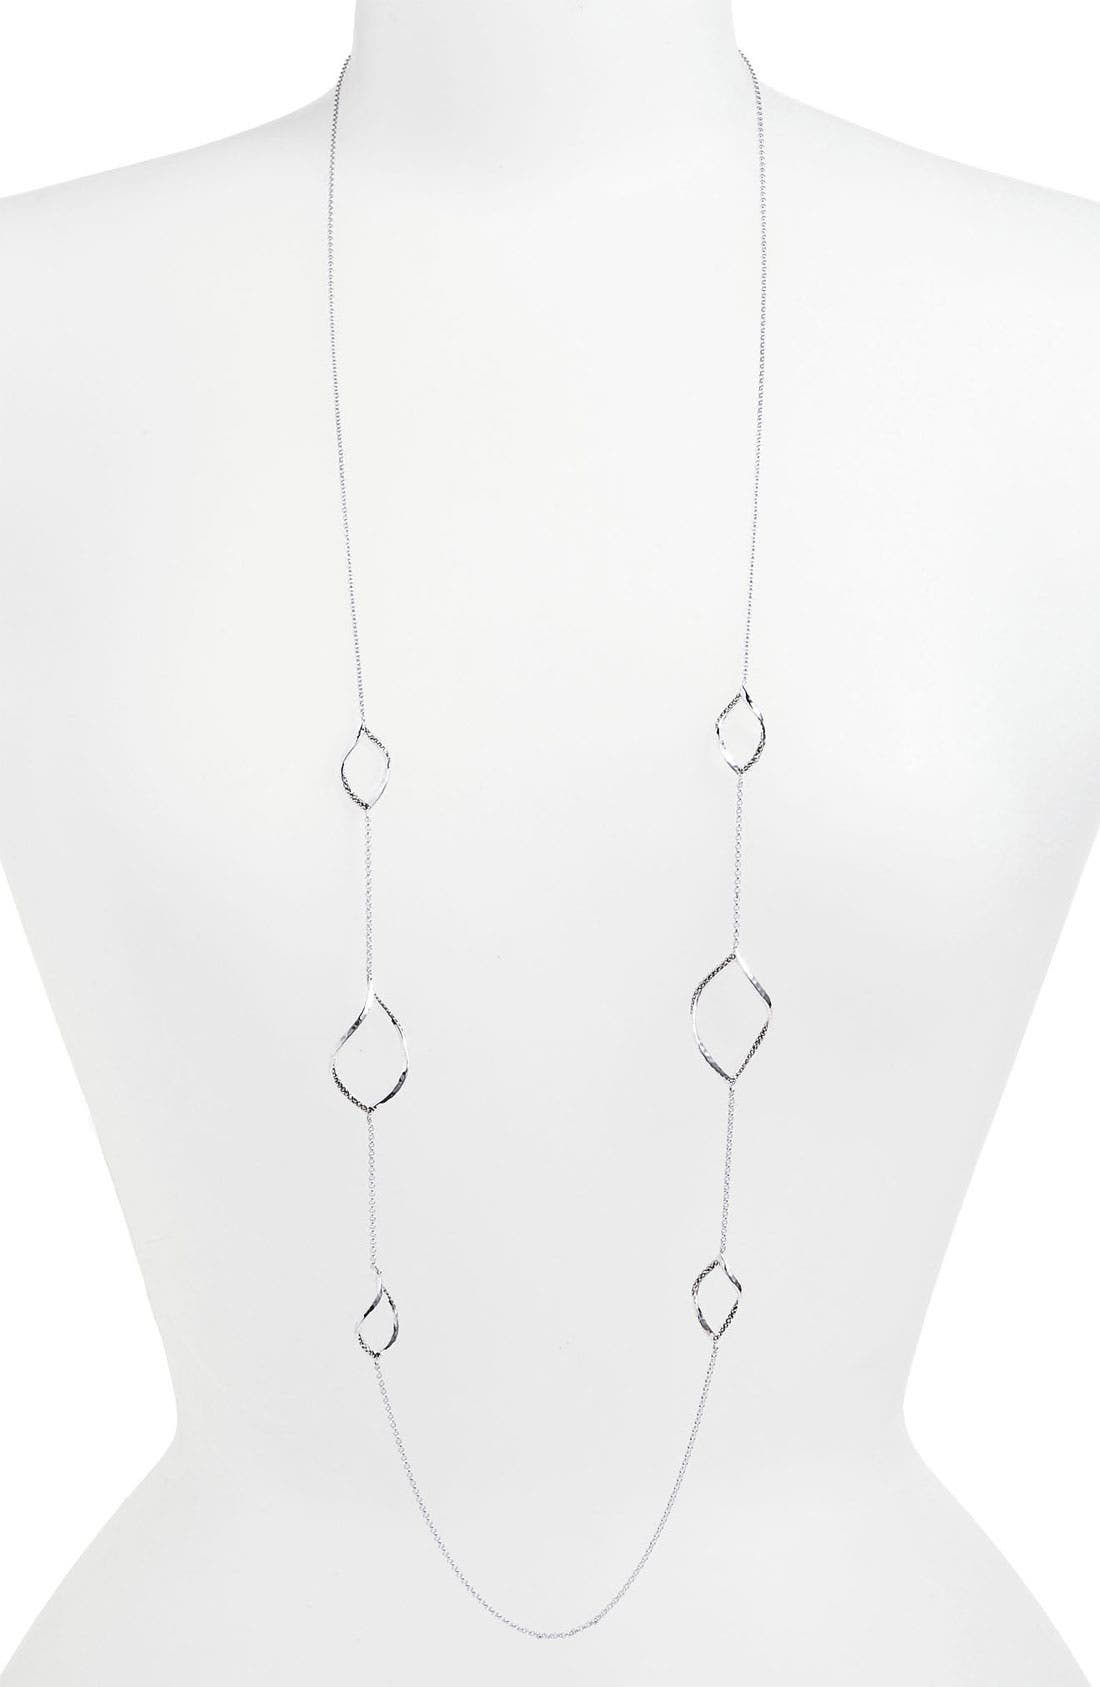 Main Image - Judith Jack 'Fluidity' Long Station Necklace